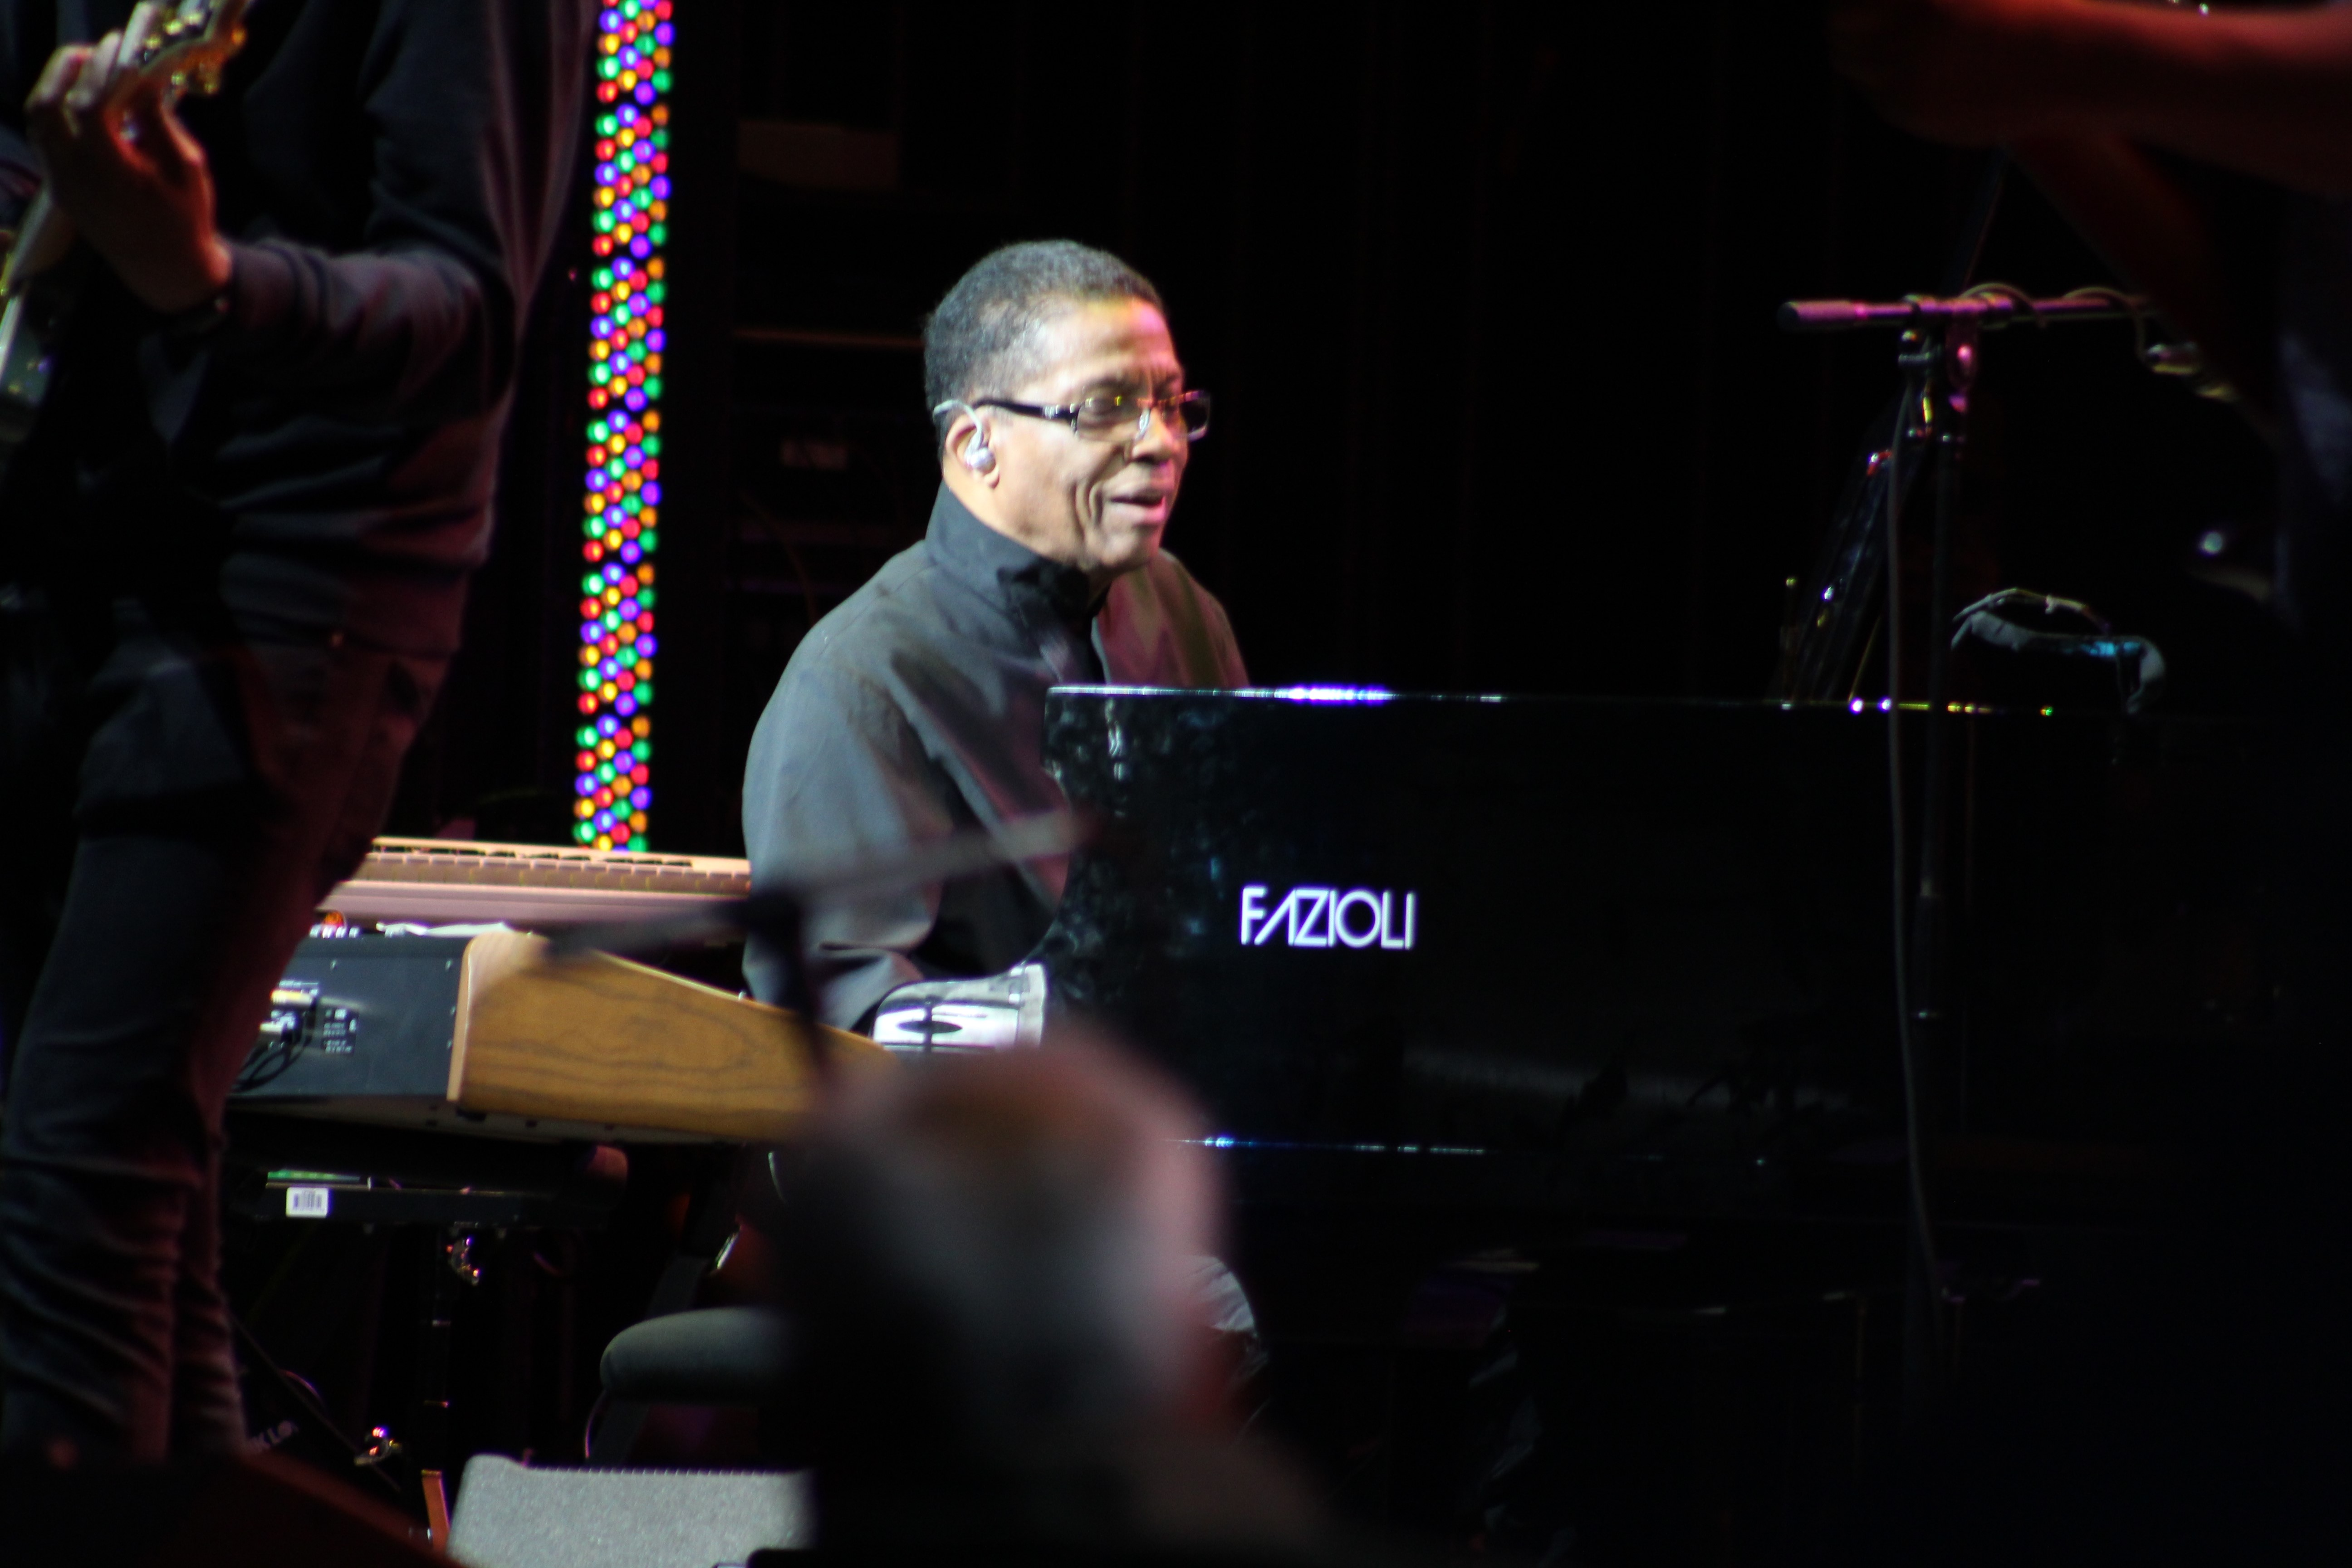 "<div class=""meta image-caption""><div class=""origin-logo origin-image wabc""><span>WABC</span></div><span class=""caption-text"">Herbie Hancock performs Saturday Night on the Amphitheater Main Stage on Saturday Night. (Calvin B. De Mond)</span></div>"